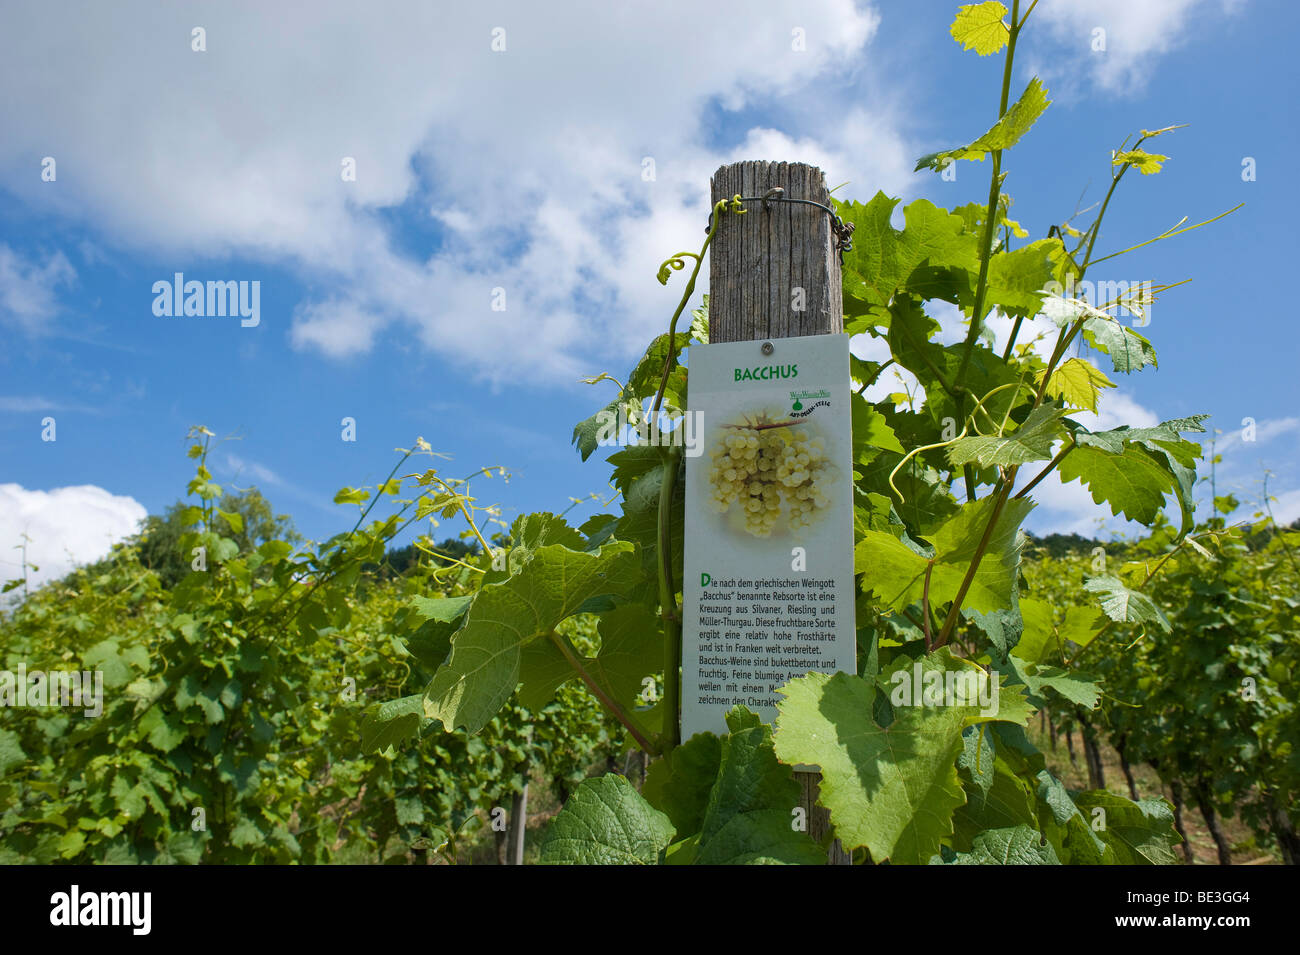 Panel, 'Bacchus' on a row of grapevines, Abt-Degen-Steig, Hassberg district, Lower Franconia, Bavaria, Germany, - Stock Image